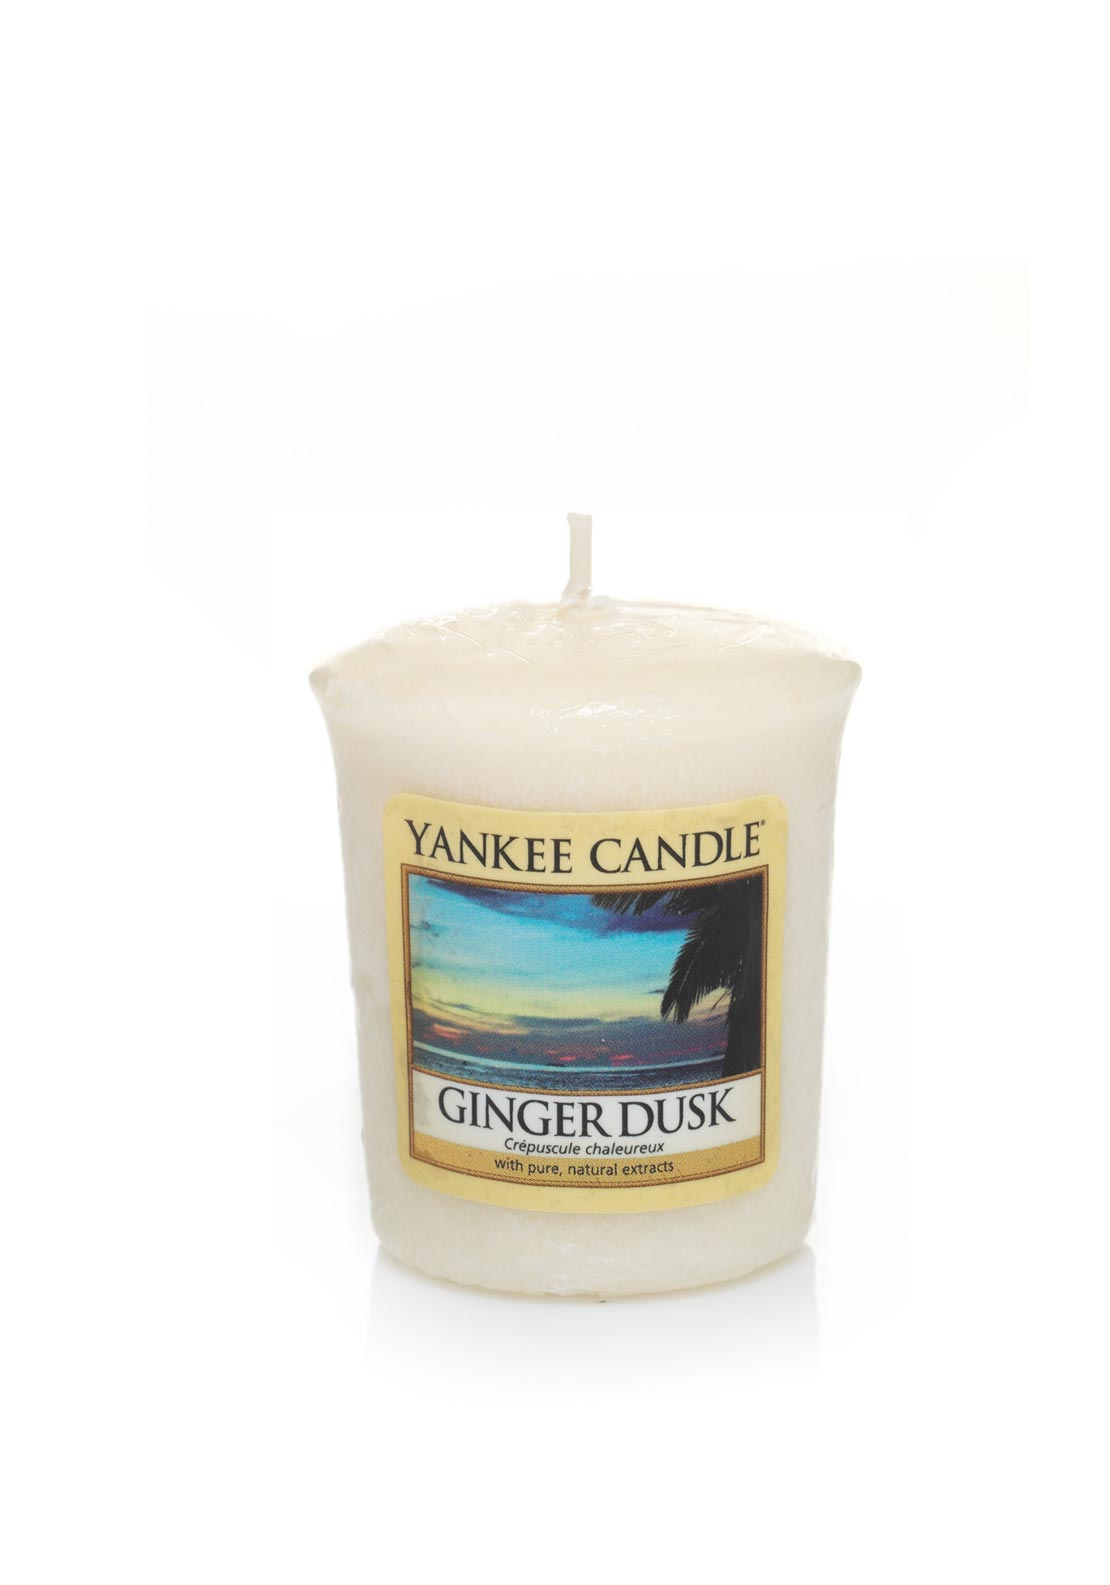 Yankee Candle Sampler Votive Candle, Ginger Dusk